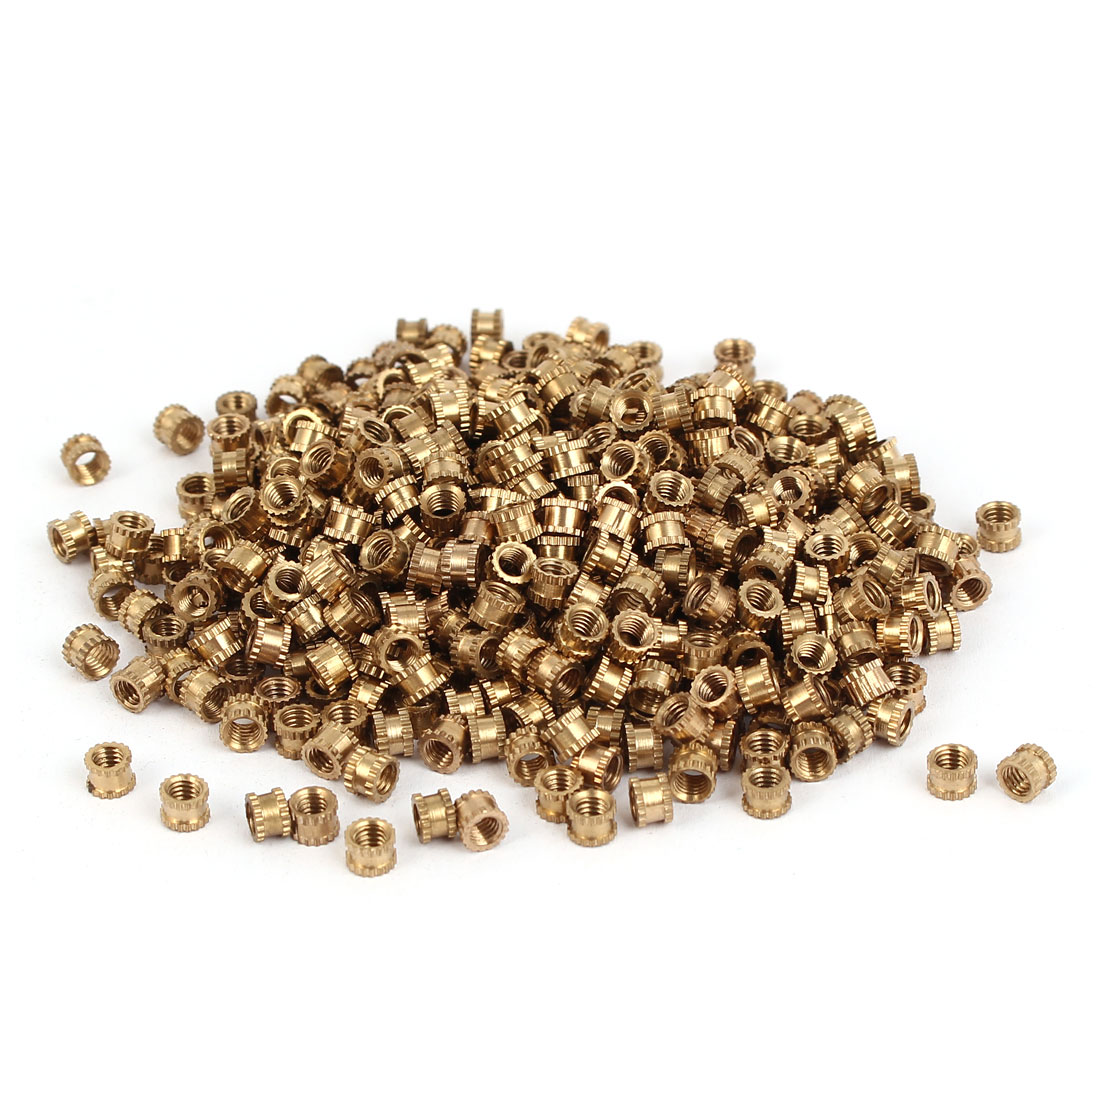 M3 x 3mm x 4.3mm Brass Injection Molding Knurled Threaded Insert Nuts 500PCS